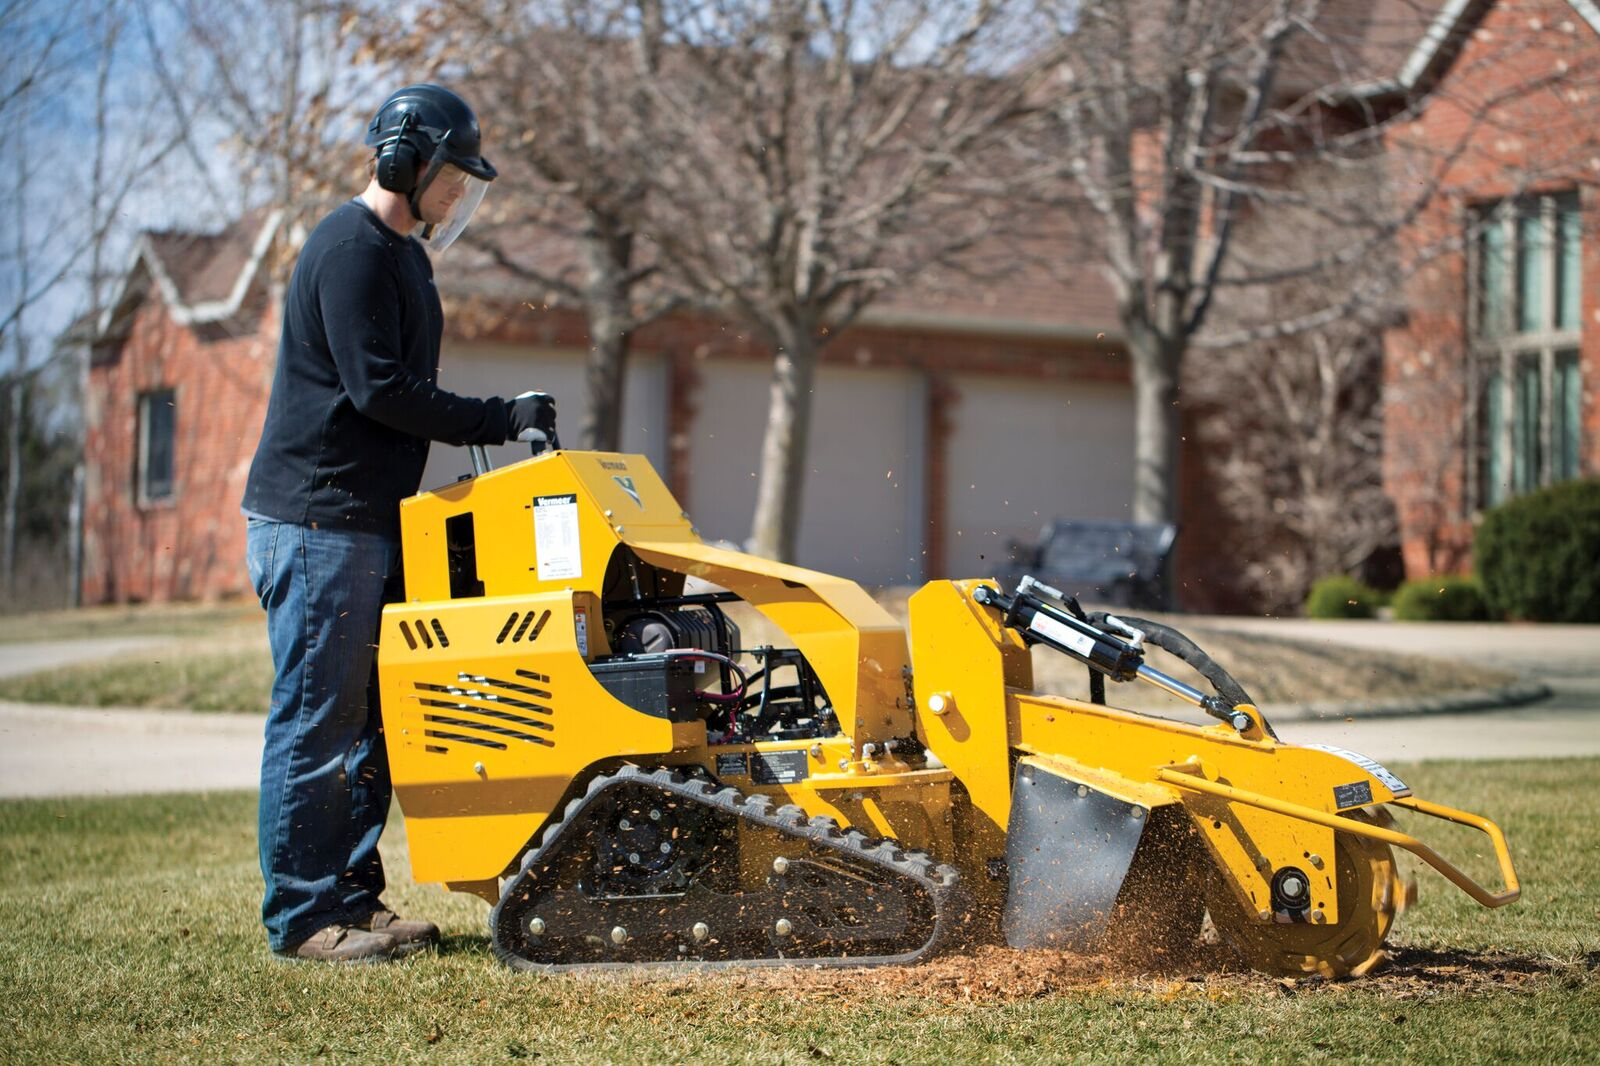 Greensboro, North Carolina-Greensboro Tree Trimming and Stump Grinding Services-We Offer Tree Trimming Services, Tree Removal, Tree Pruning, Tree Cutting, Residential and Commercial Tree Trimming Services, Storm Damage, Emergency Tree Removal, Land Clearing, Tree Companies, Tree Care Service, Stump Grinding, and we're the Best Tree Trimming Company Near You Guaranteed!